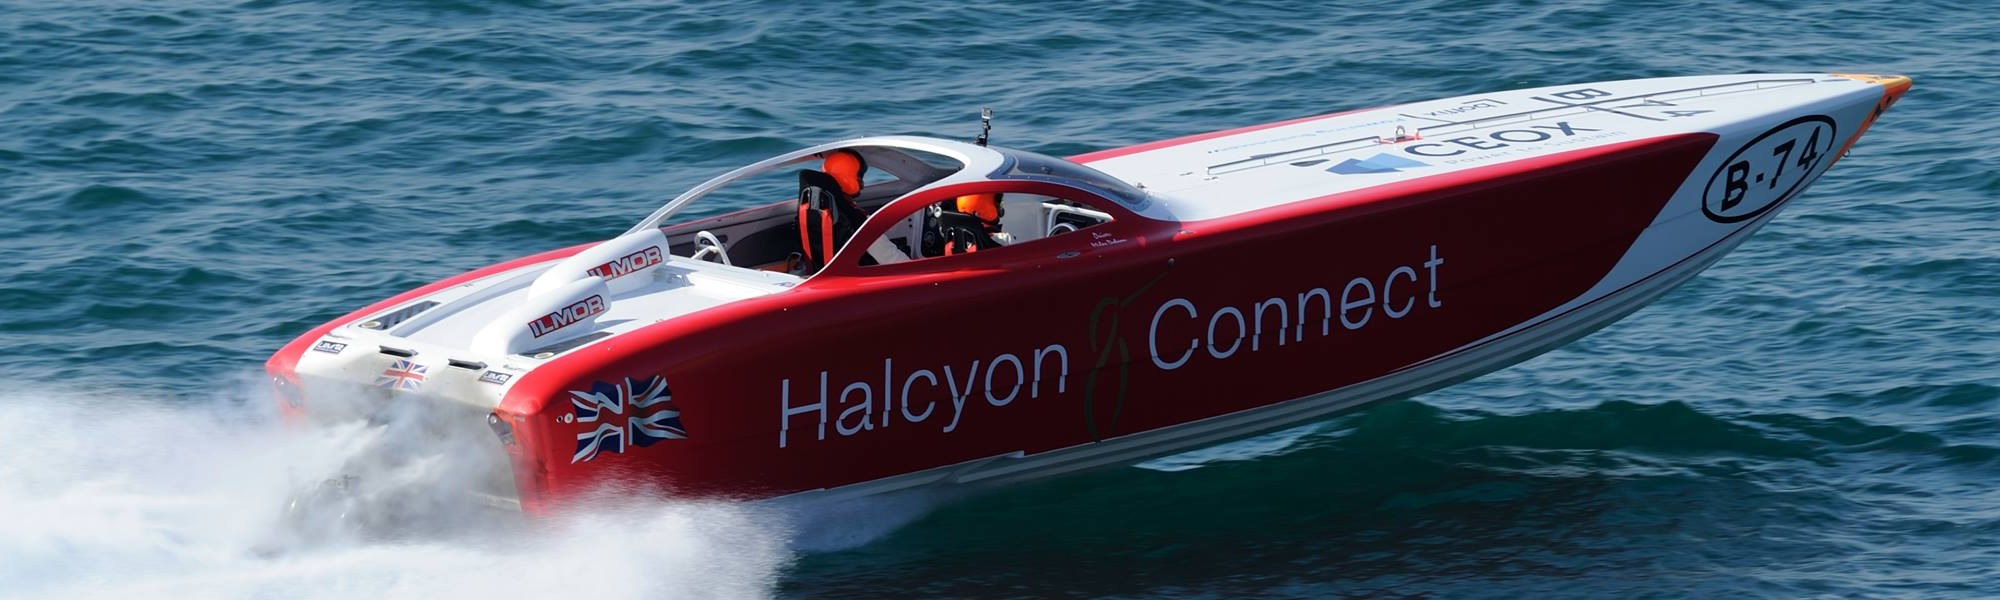 Cowes Torquay Cowes & Cowes Poole Cowes Offshore Powerboat Races 2018